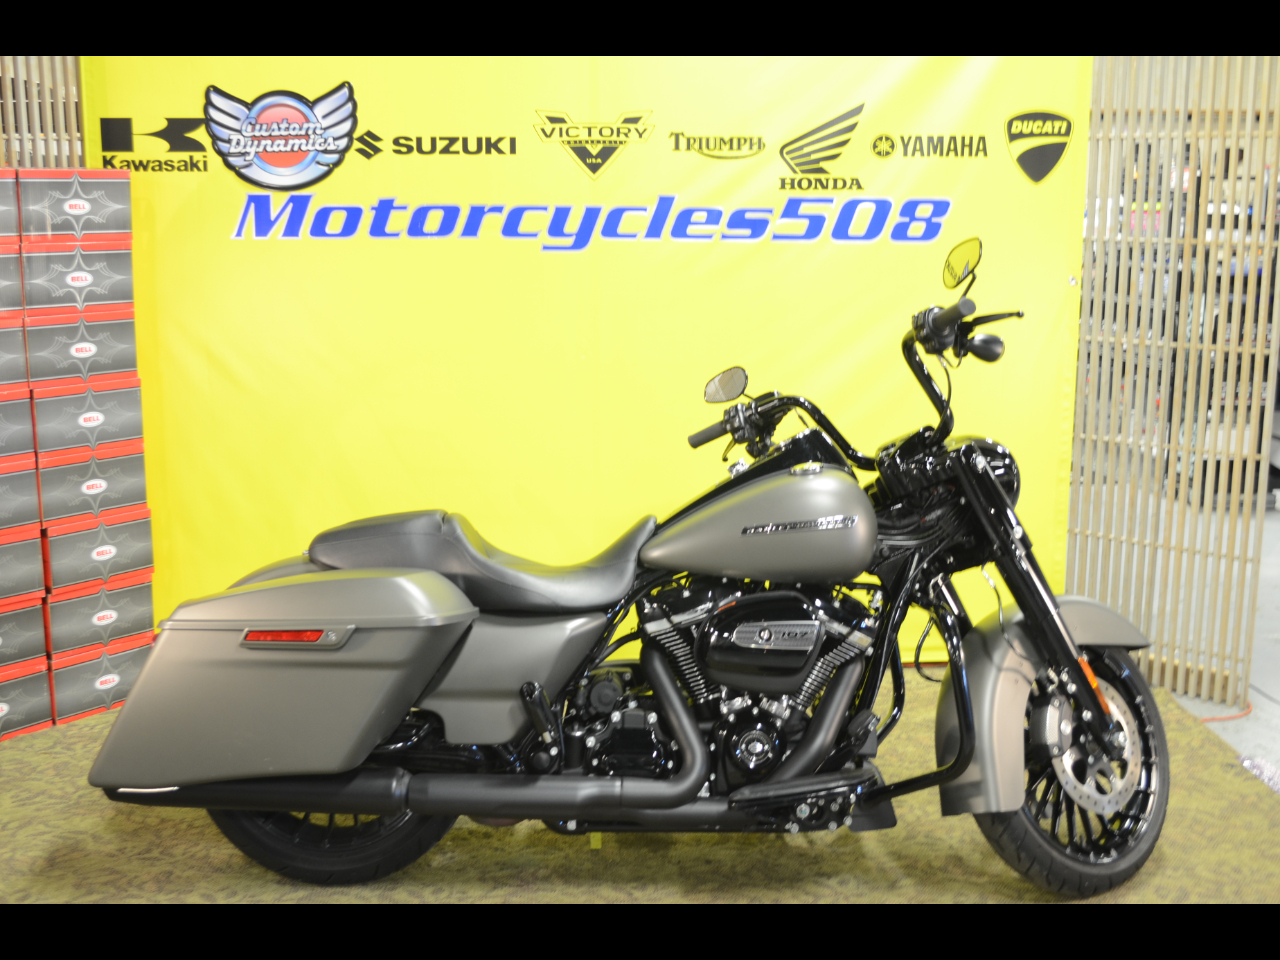 2018 Harley-Davidson Road King Special FLHRXS